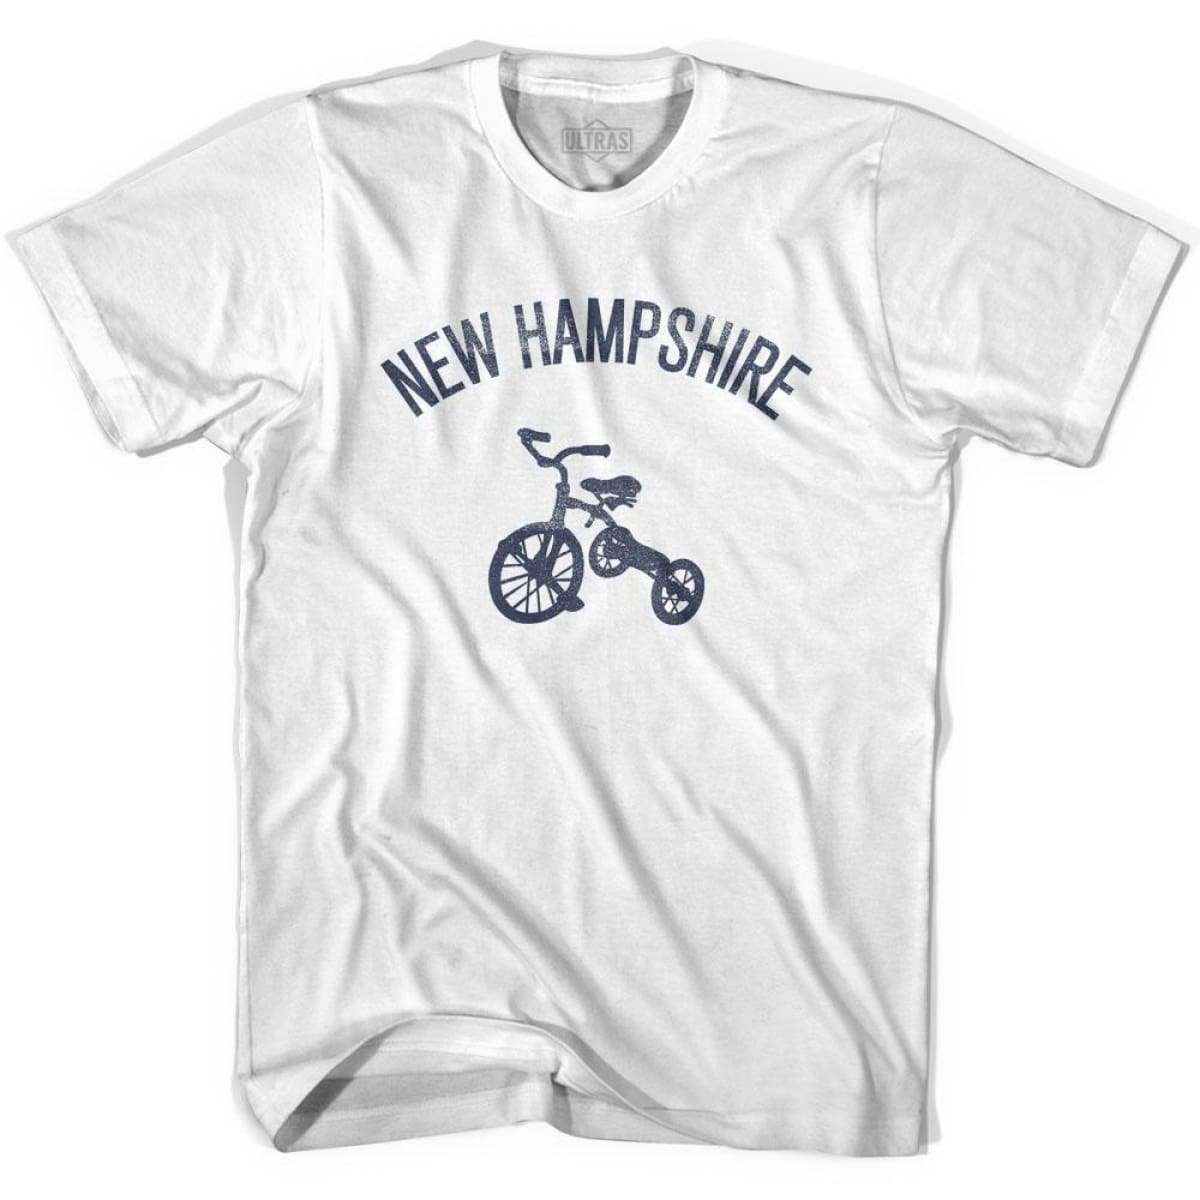 New Hampshire State Tricycle Womens Cotton T-shirt - White / Womens Small - Tricycle State